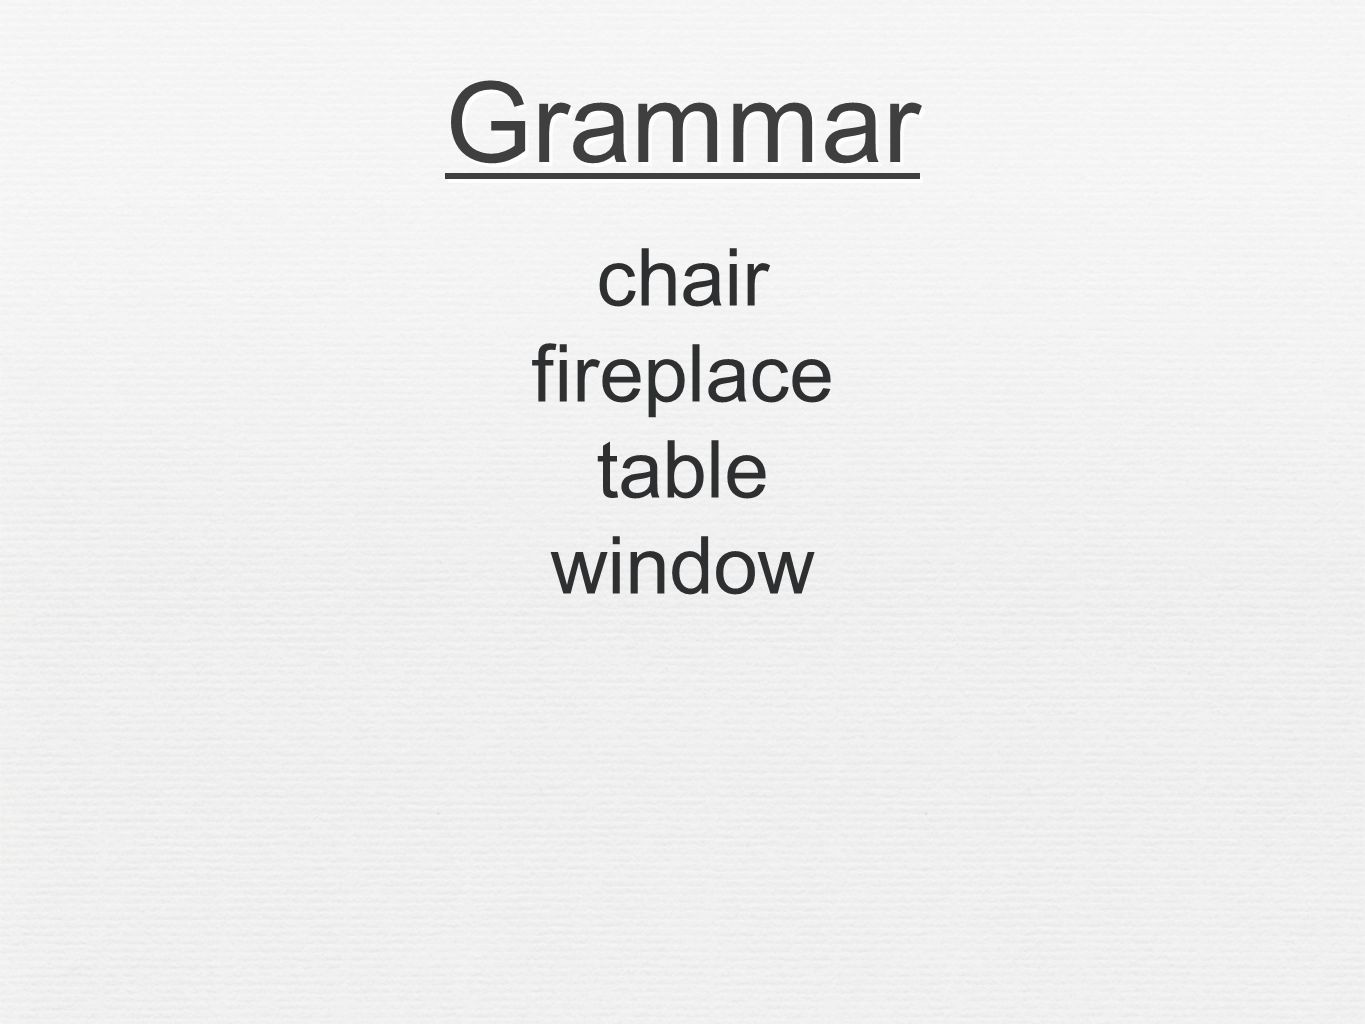 Grammar chair fireplace table window